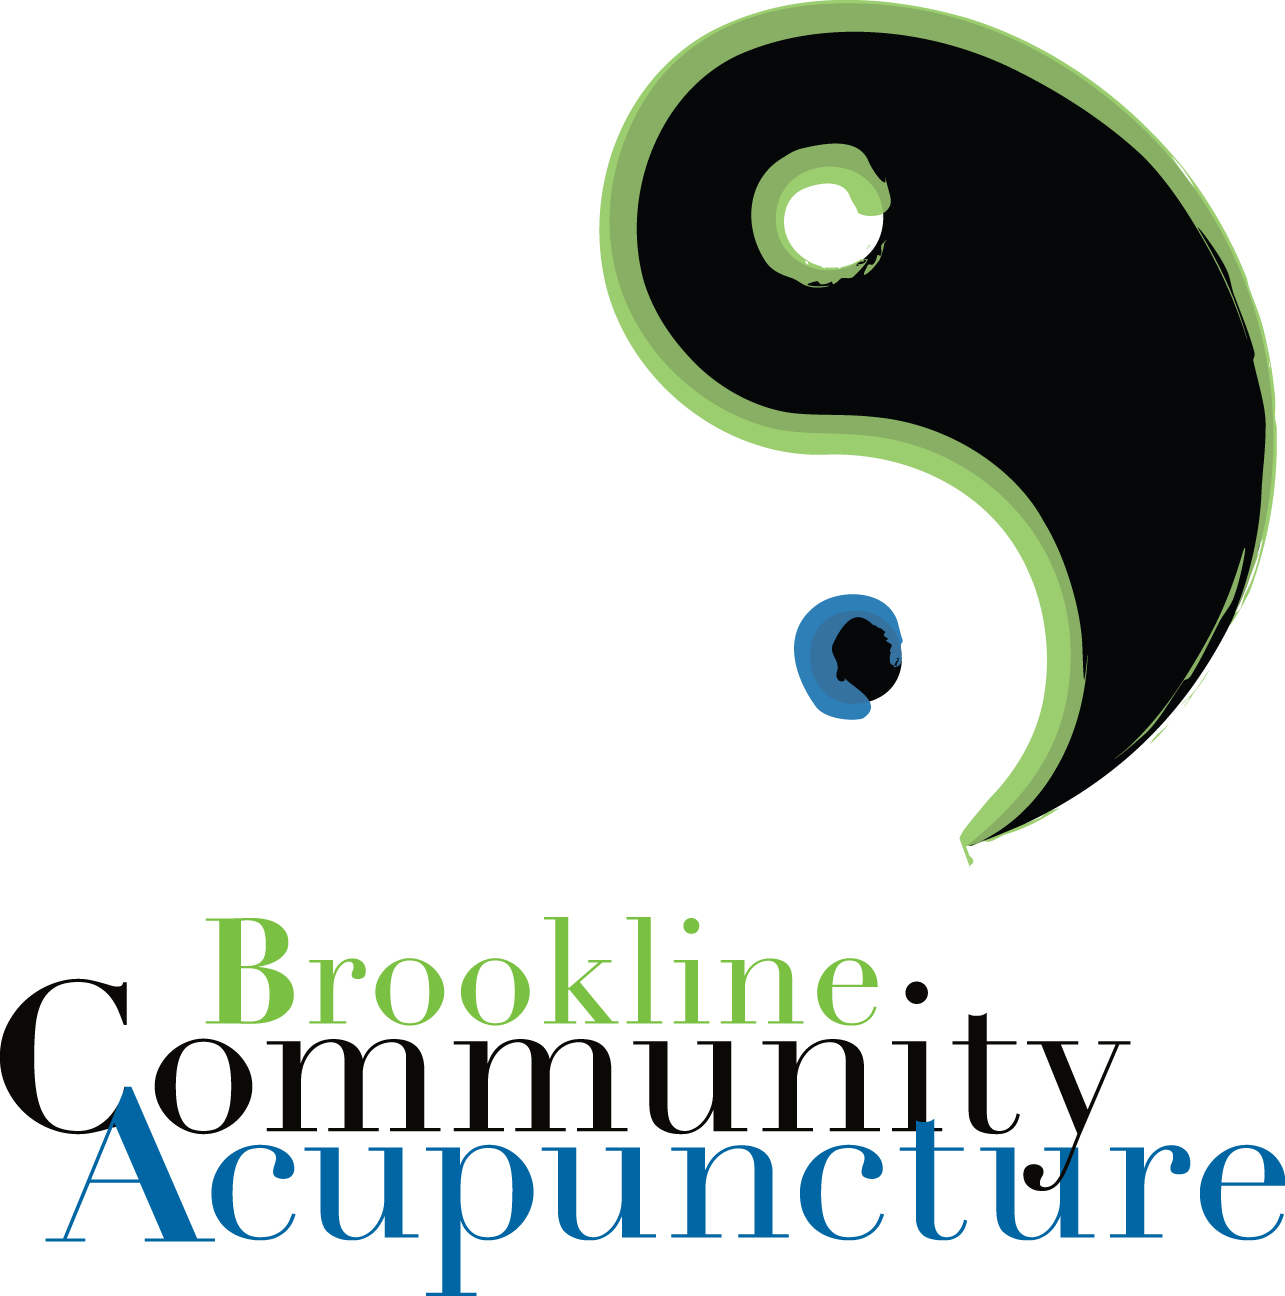 Brookline Community Acupuncture